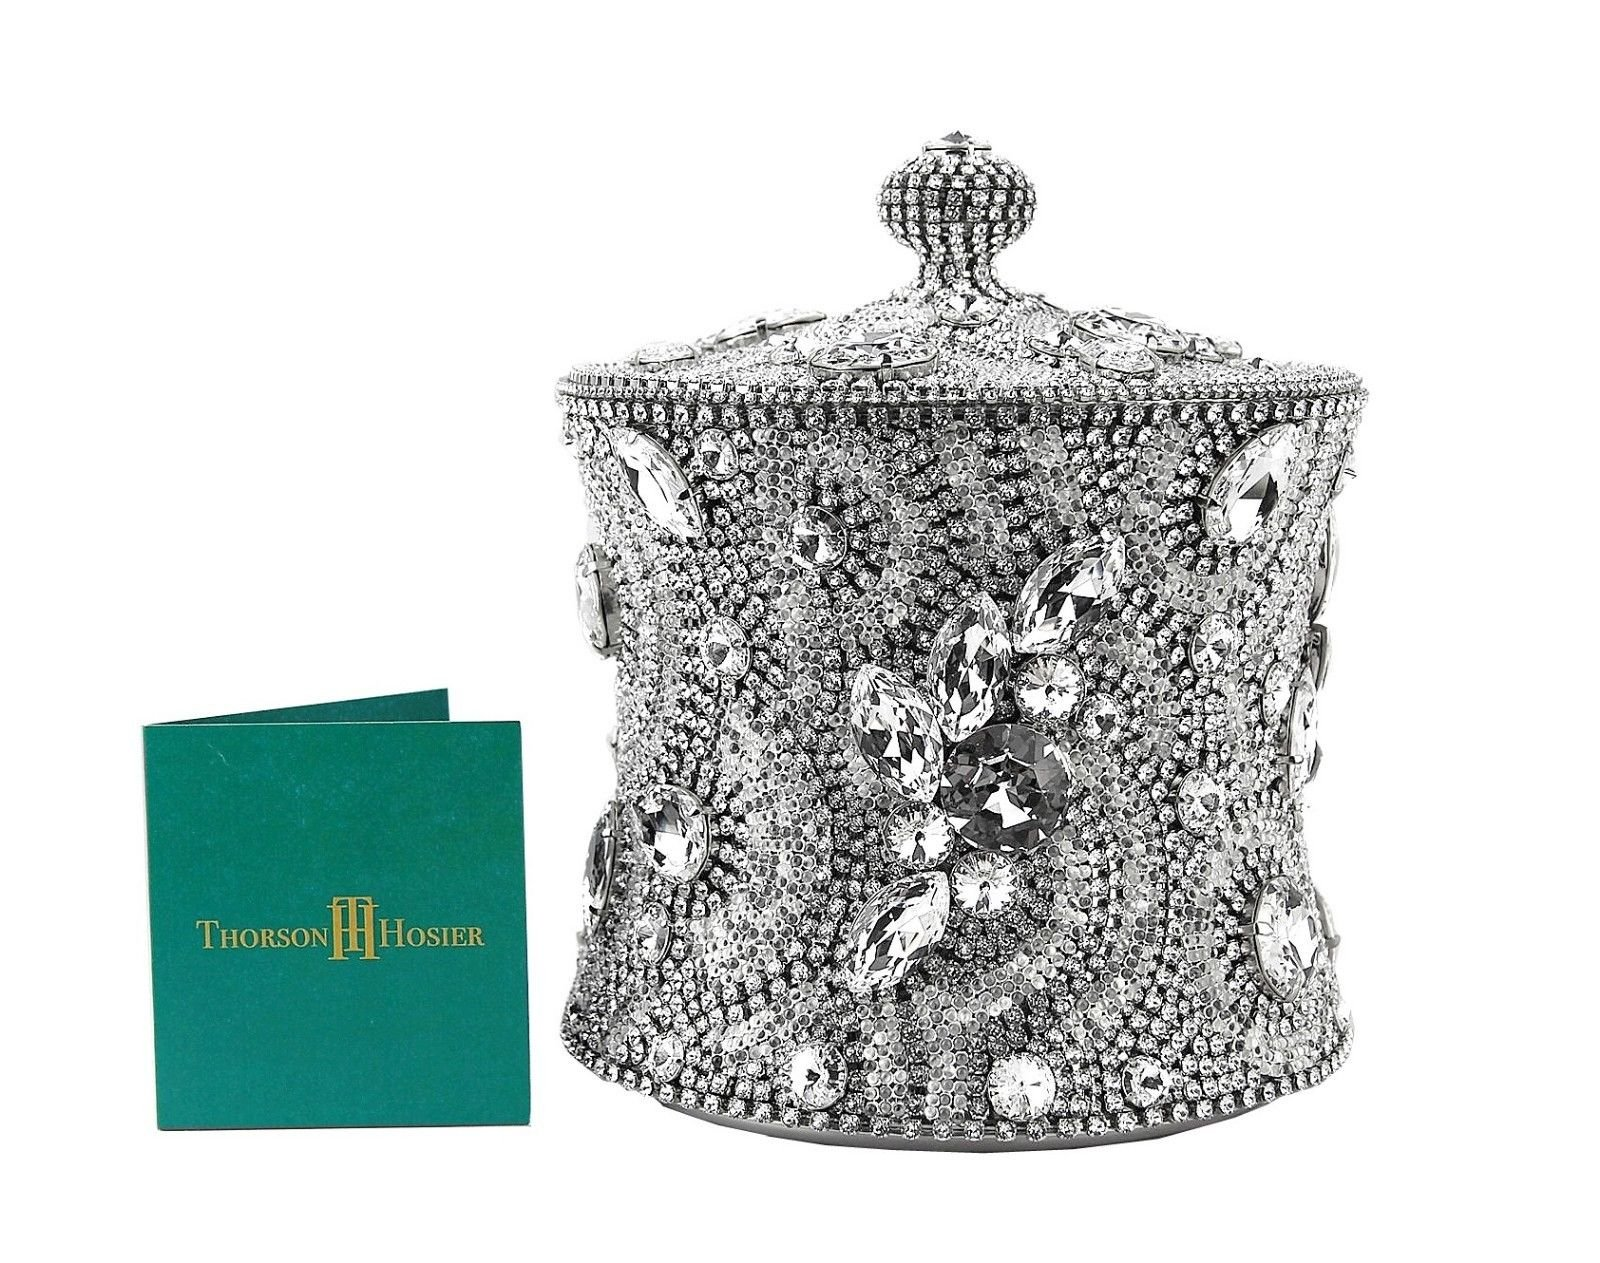 THORSON HOSIER LAUREL ICE BUCKET LARGE by Thorson Hosier (Image #1)